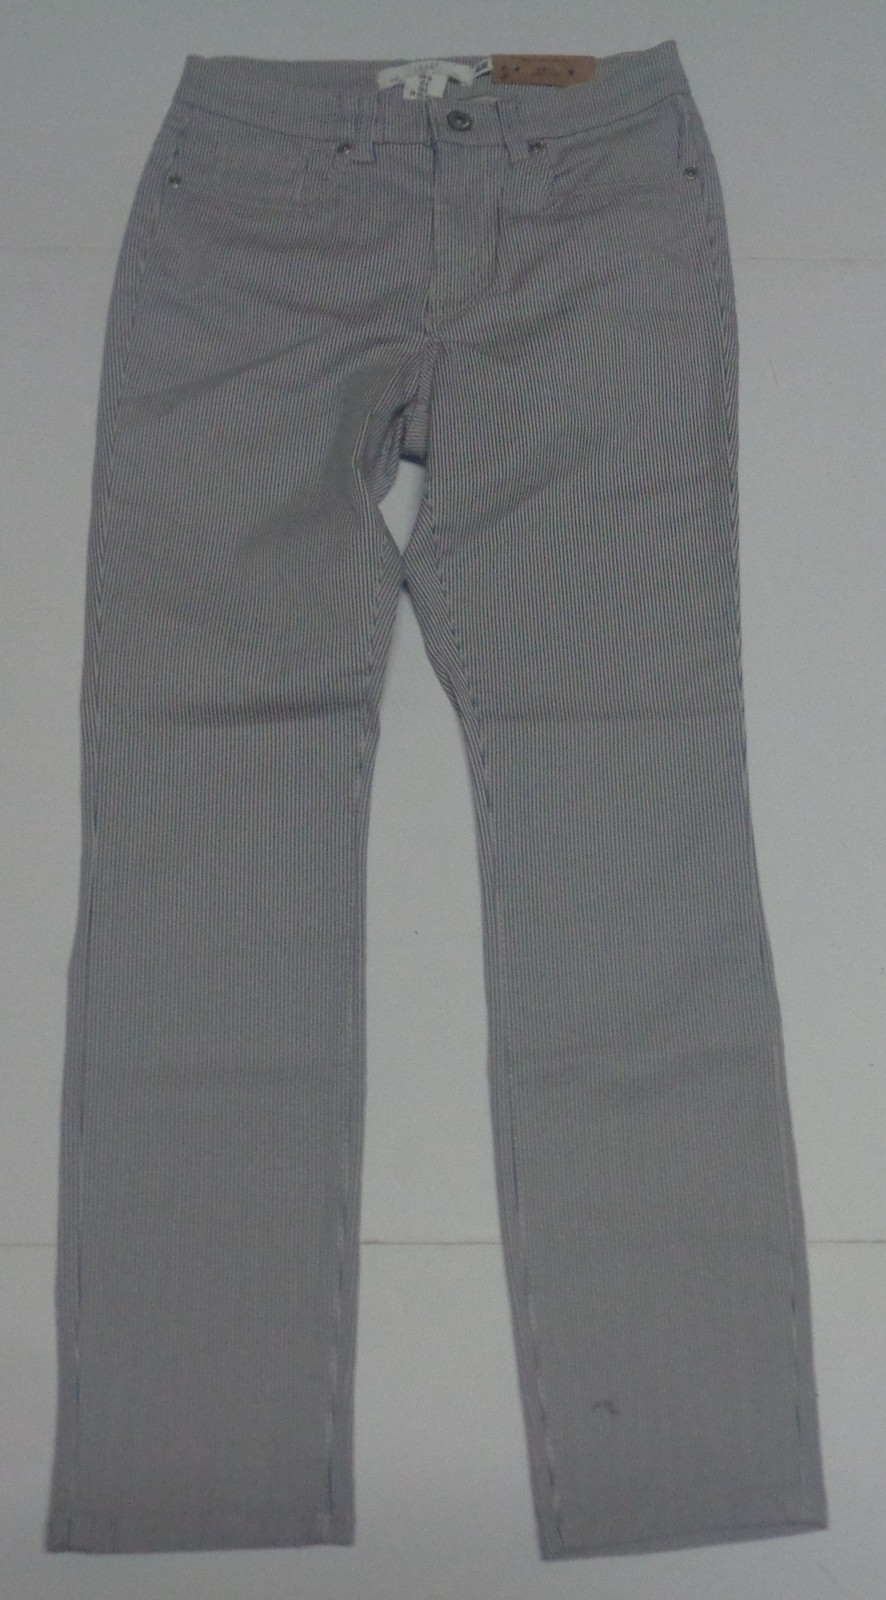 H&M Pinstriped Jeans NWT Juniors Sz 6 Slim Fit Gray